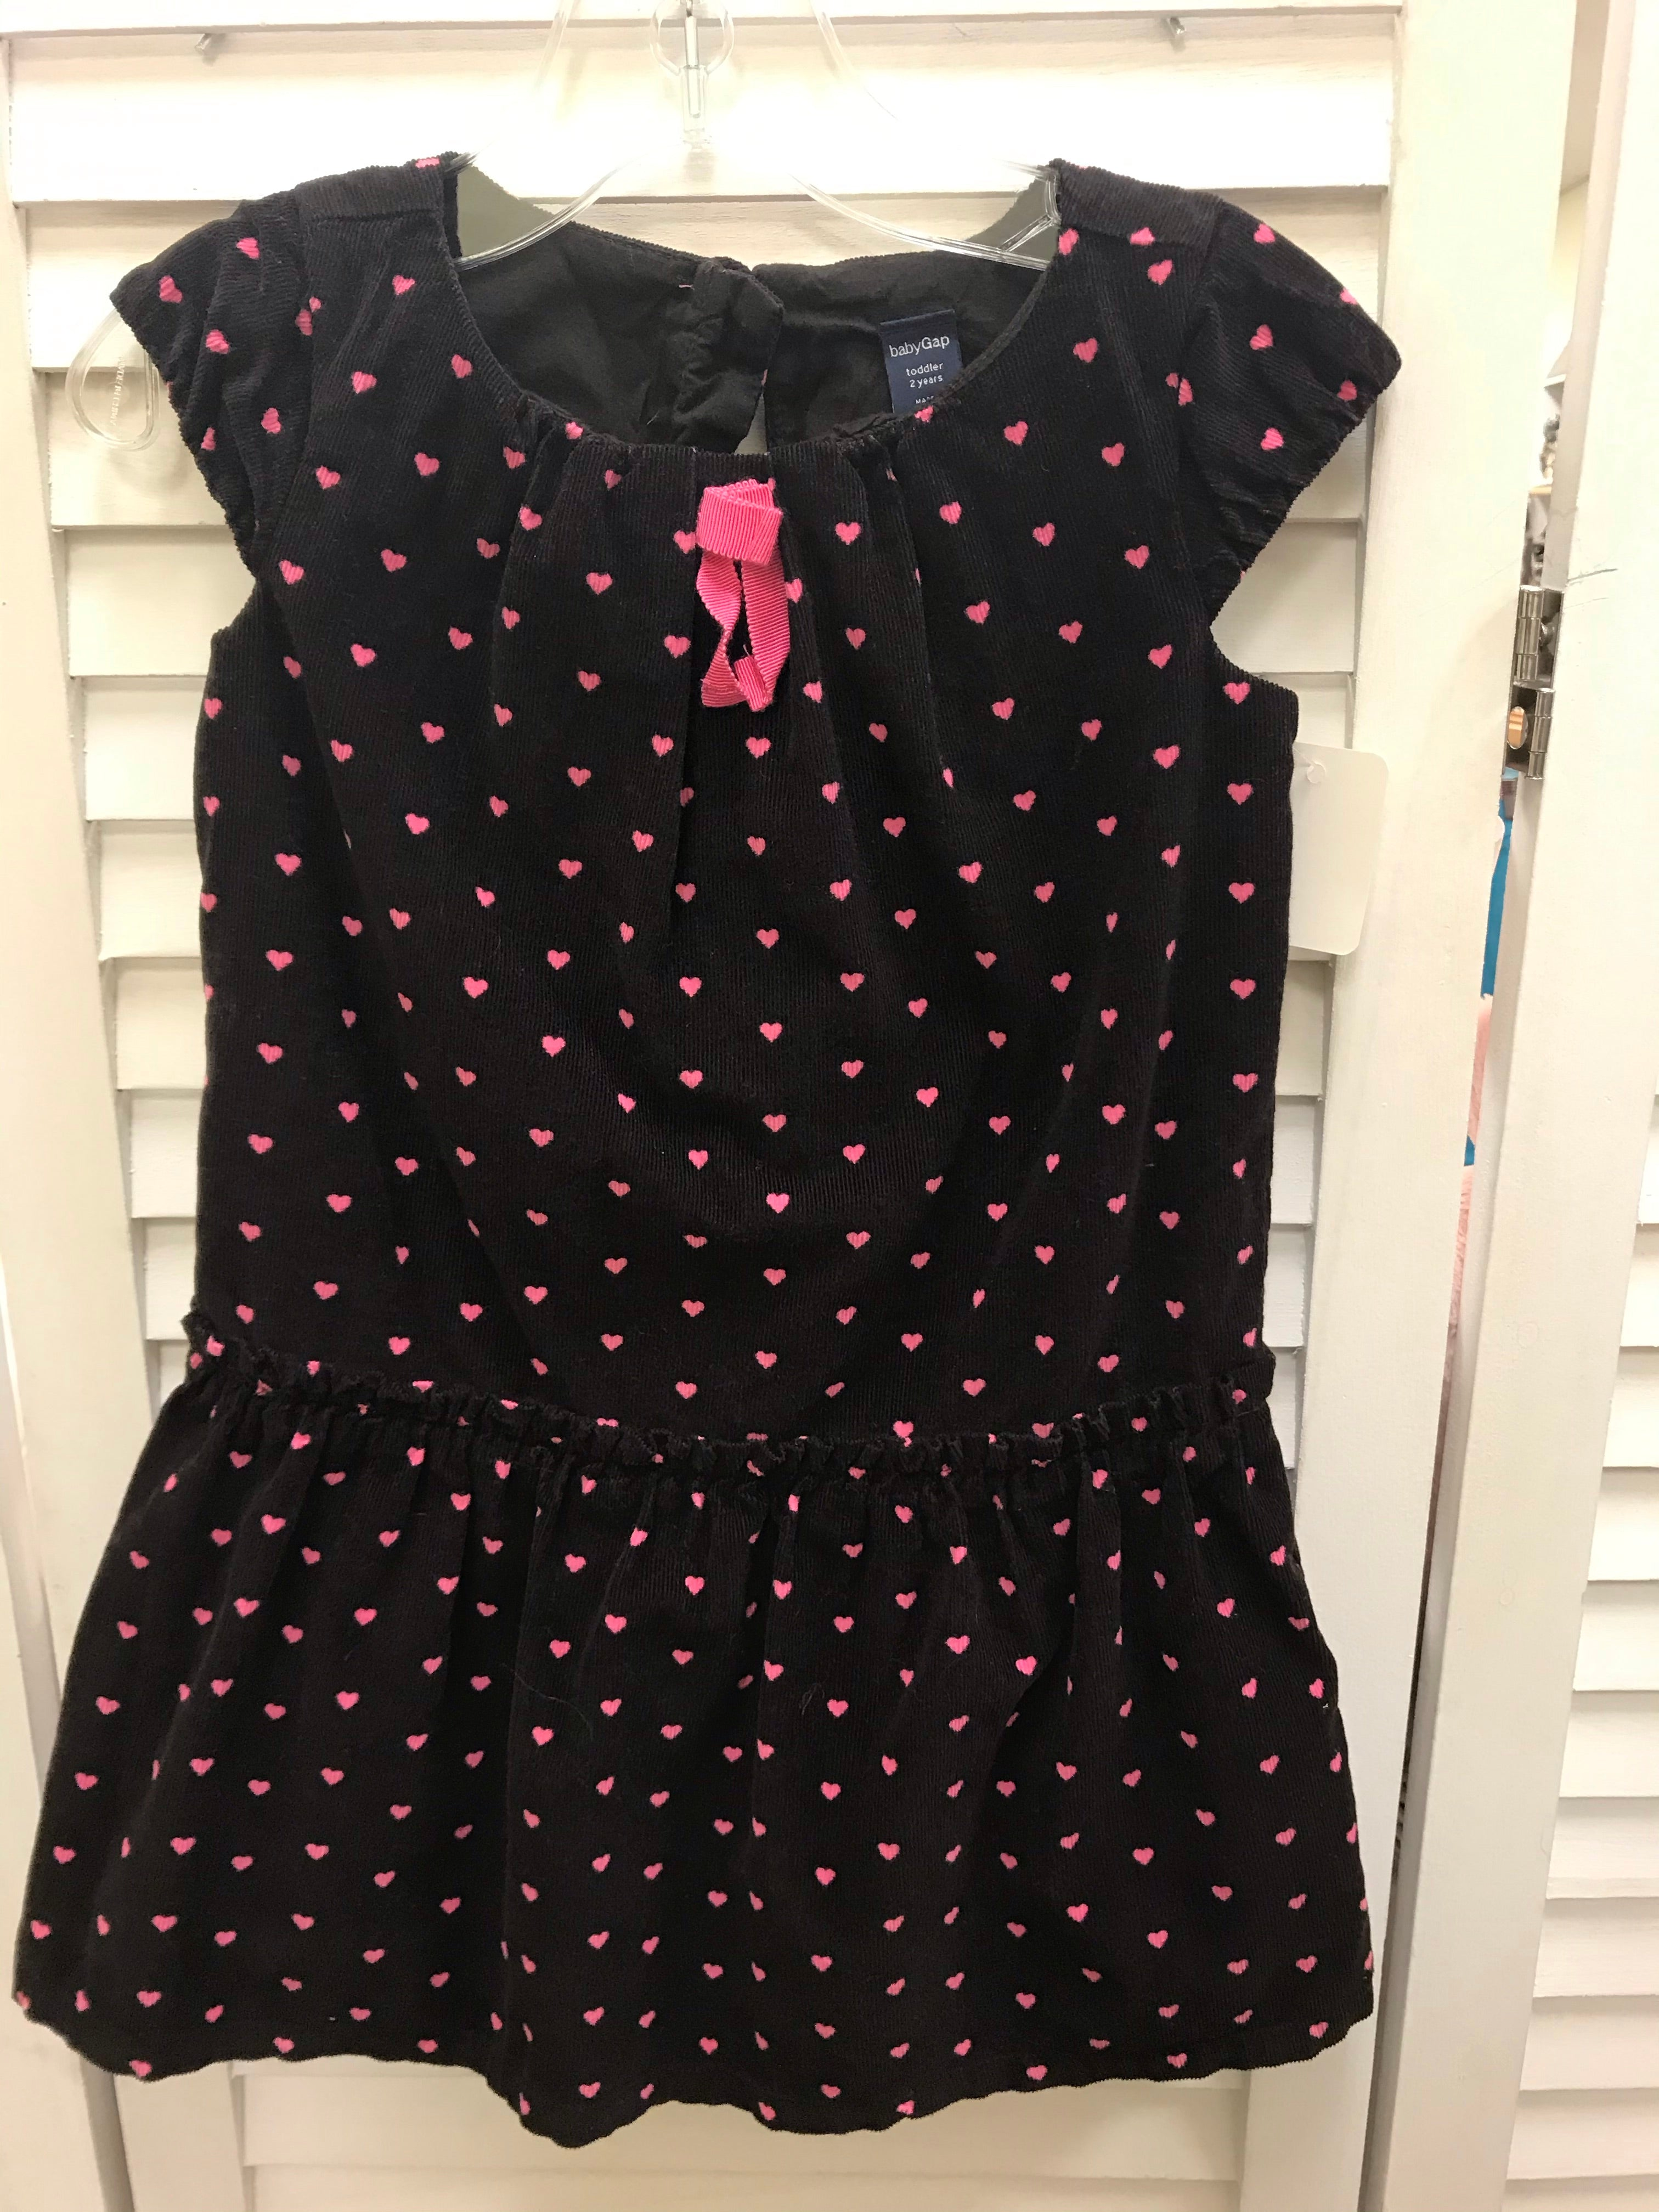 Baby gap dress 2 - Le Bébé Chic Boutique